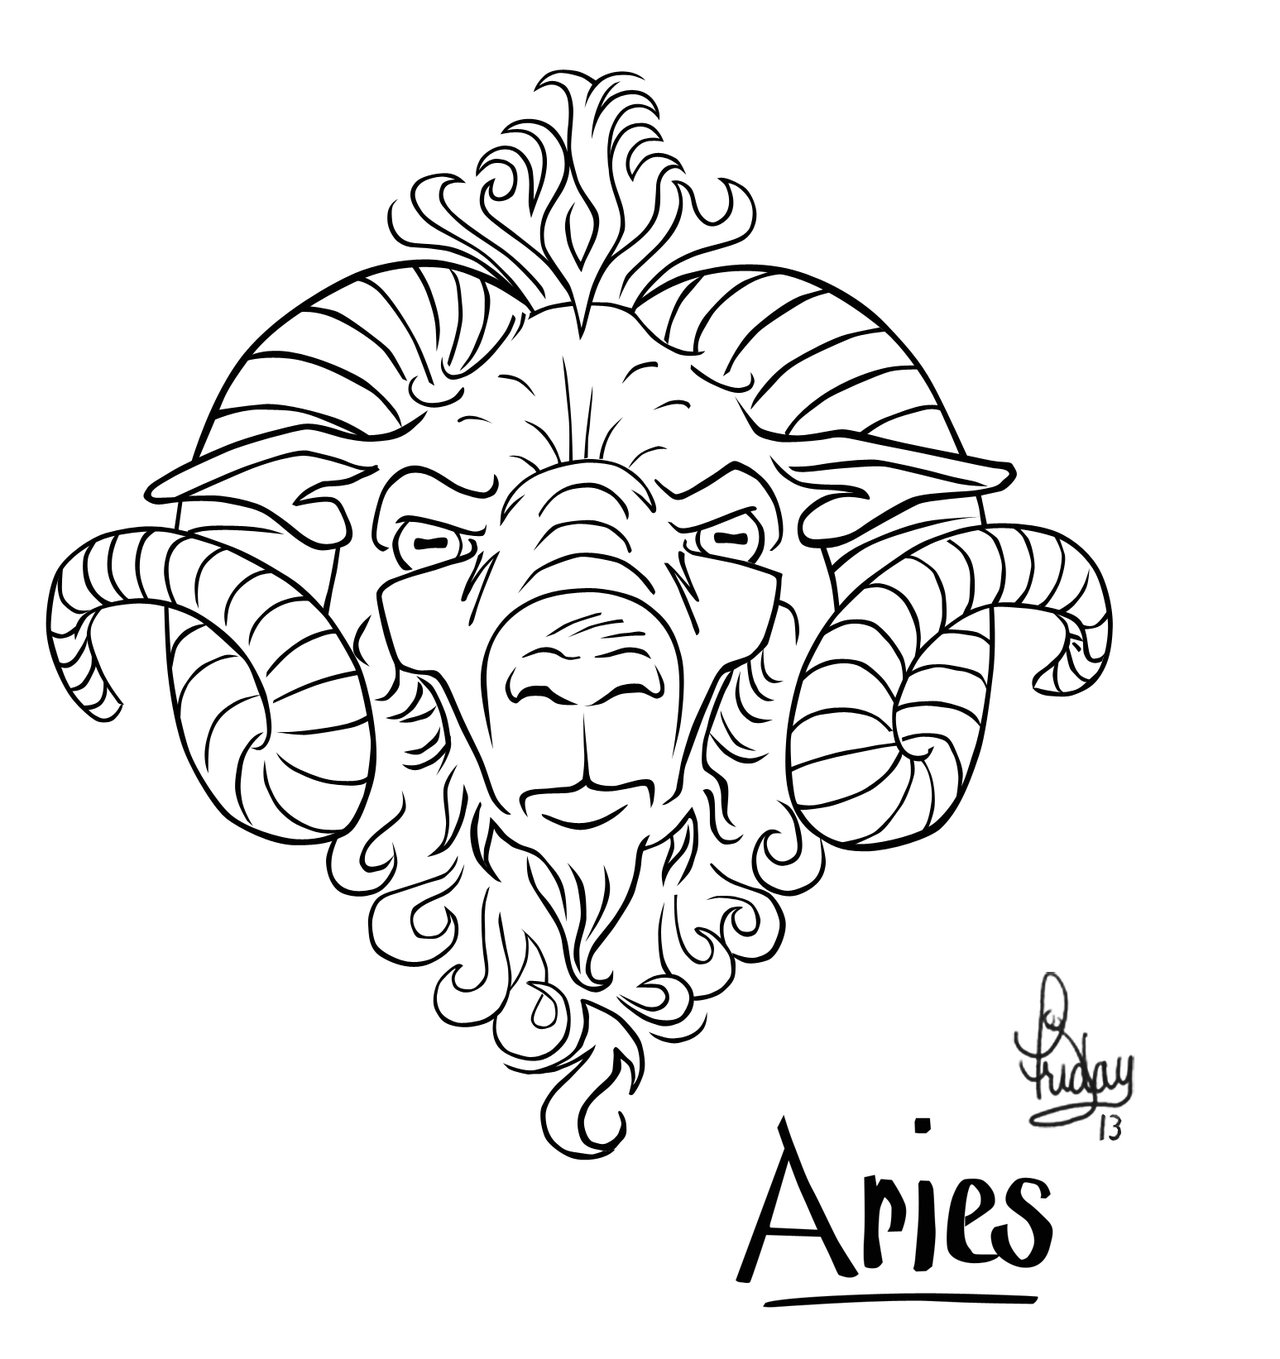 Aries Ram Tattoo Design